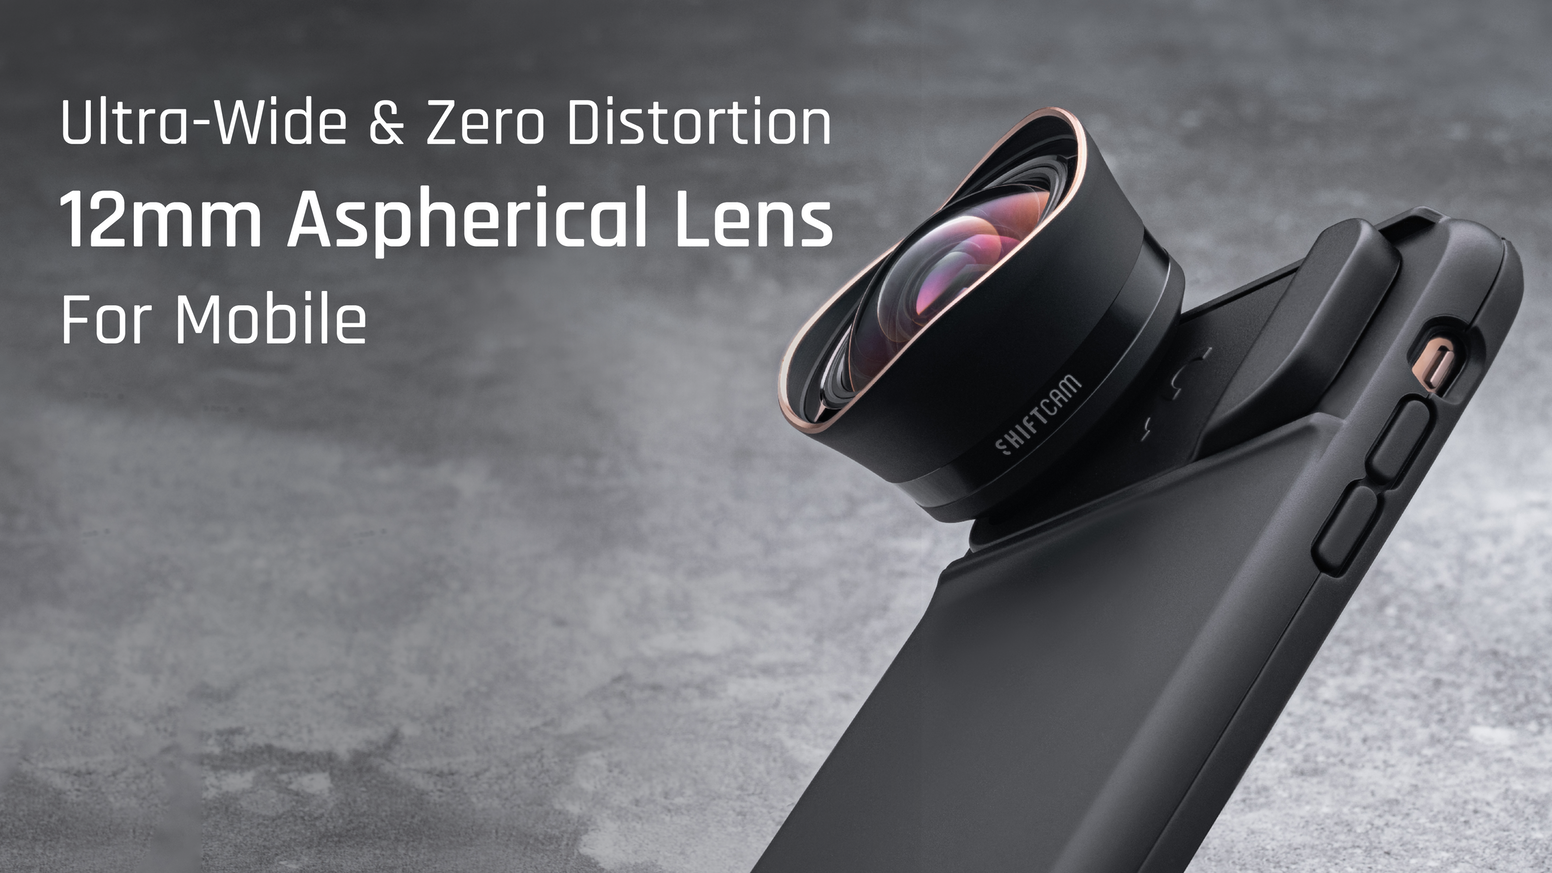 SEE MORE THAN EVER BEFORE WITH THE SHIFTCAM 2.0 12MM ULTRA WIDE ANGLE ASPHERICAL LENS FOR MOBILE PHONES